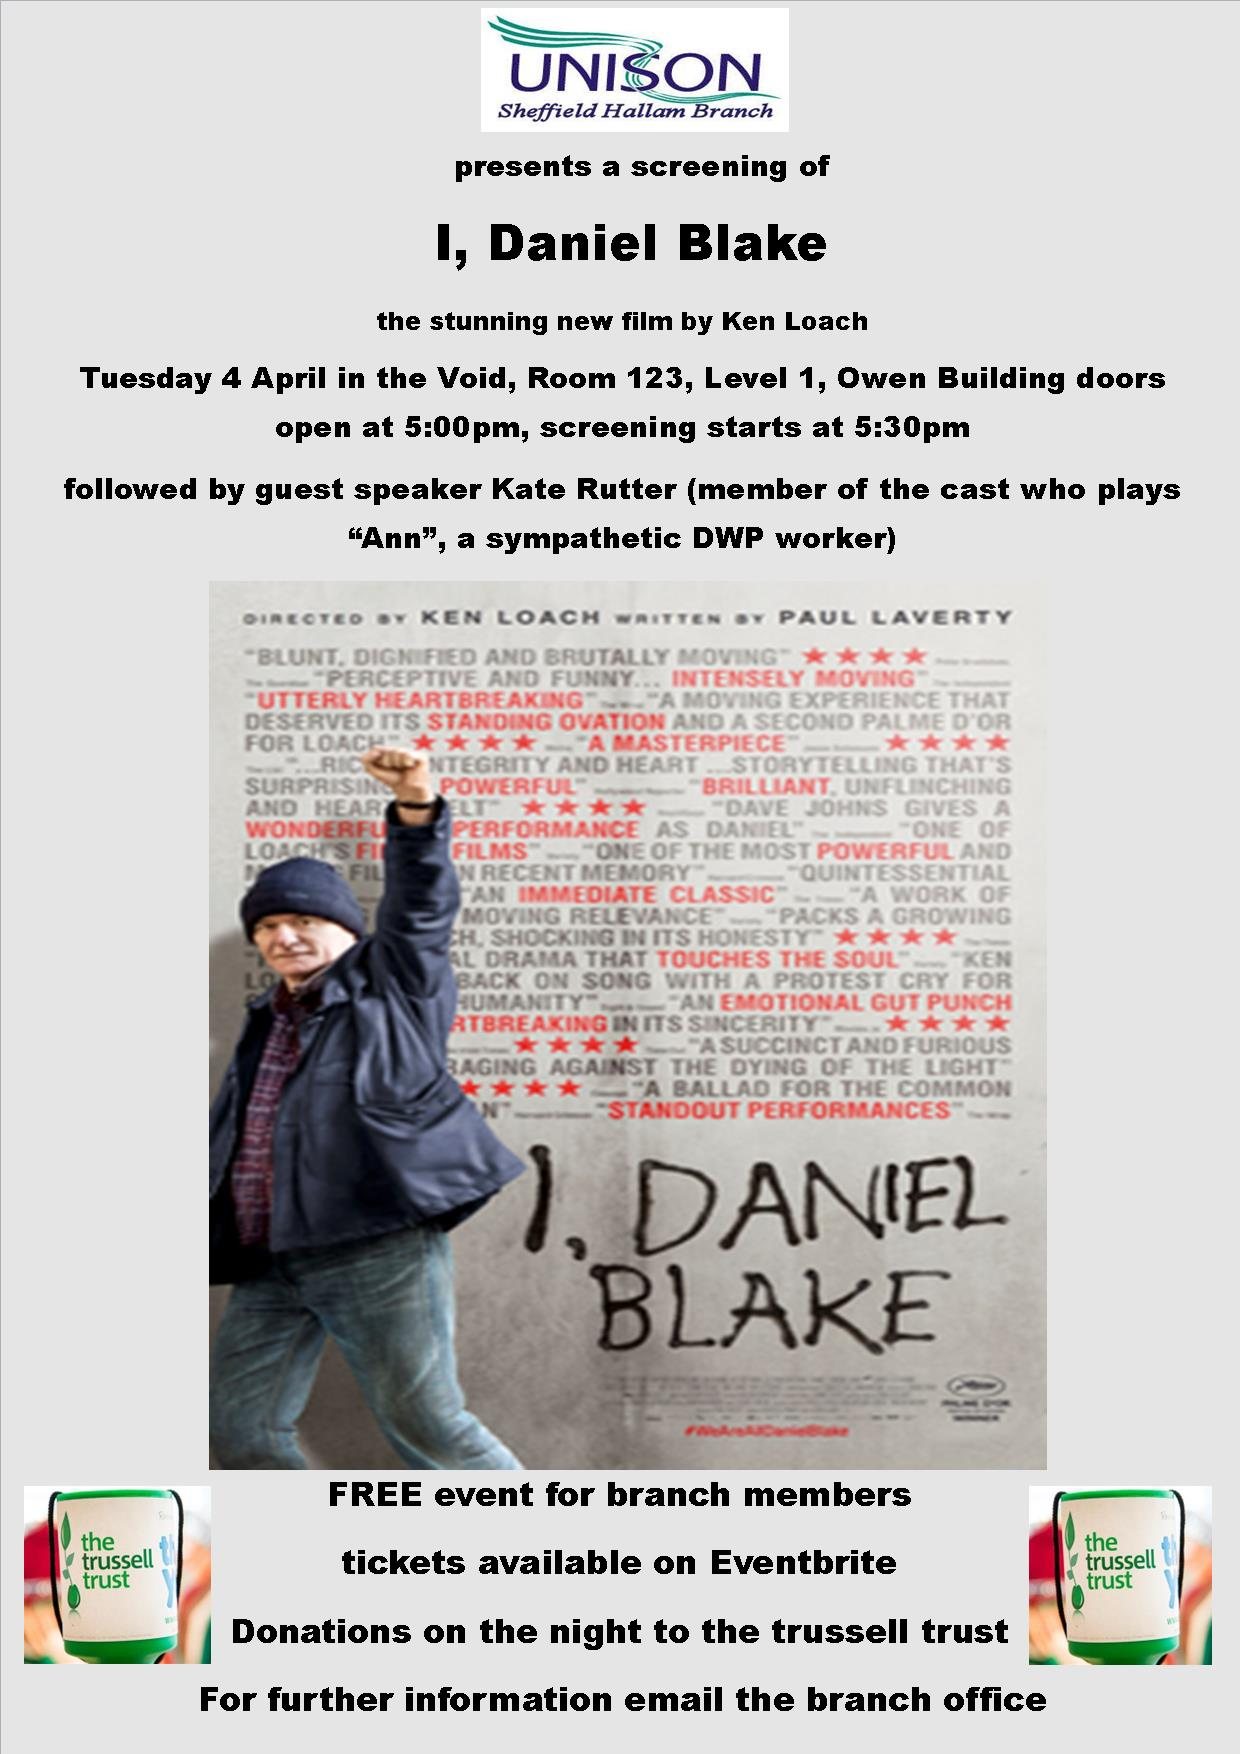 I daniel blake poster NO LINKS